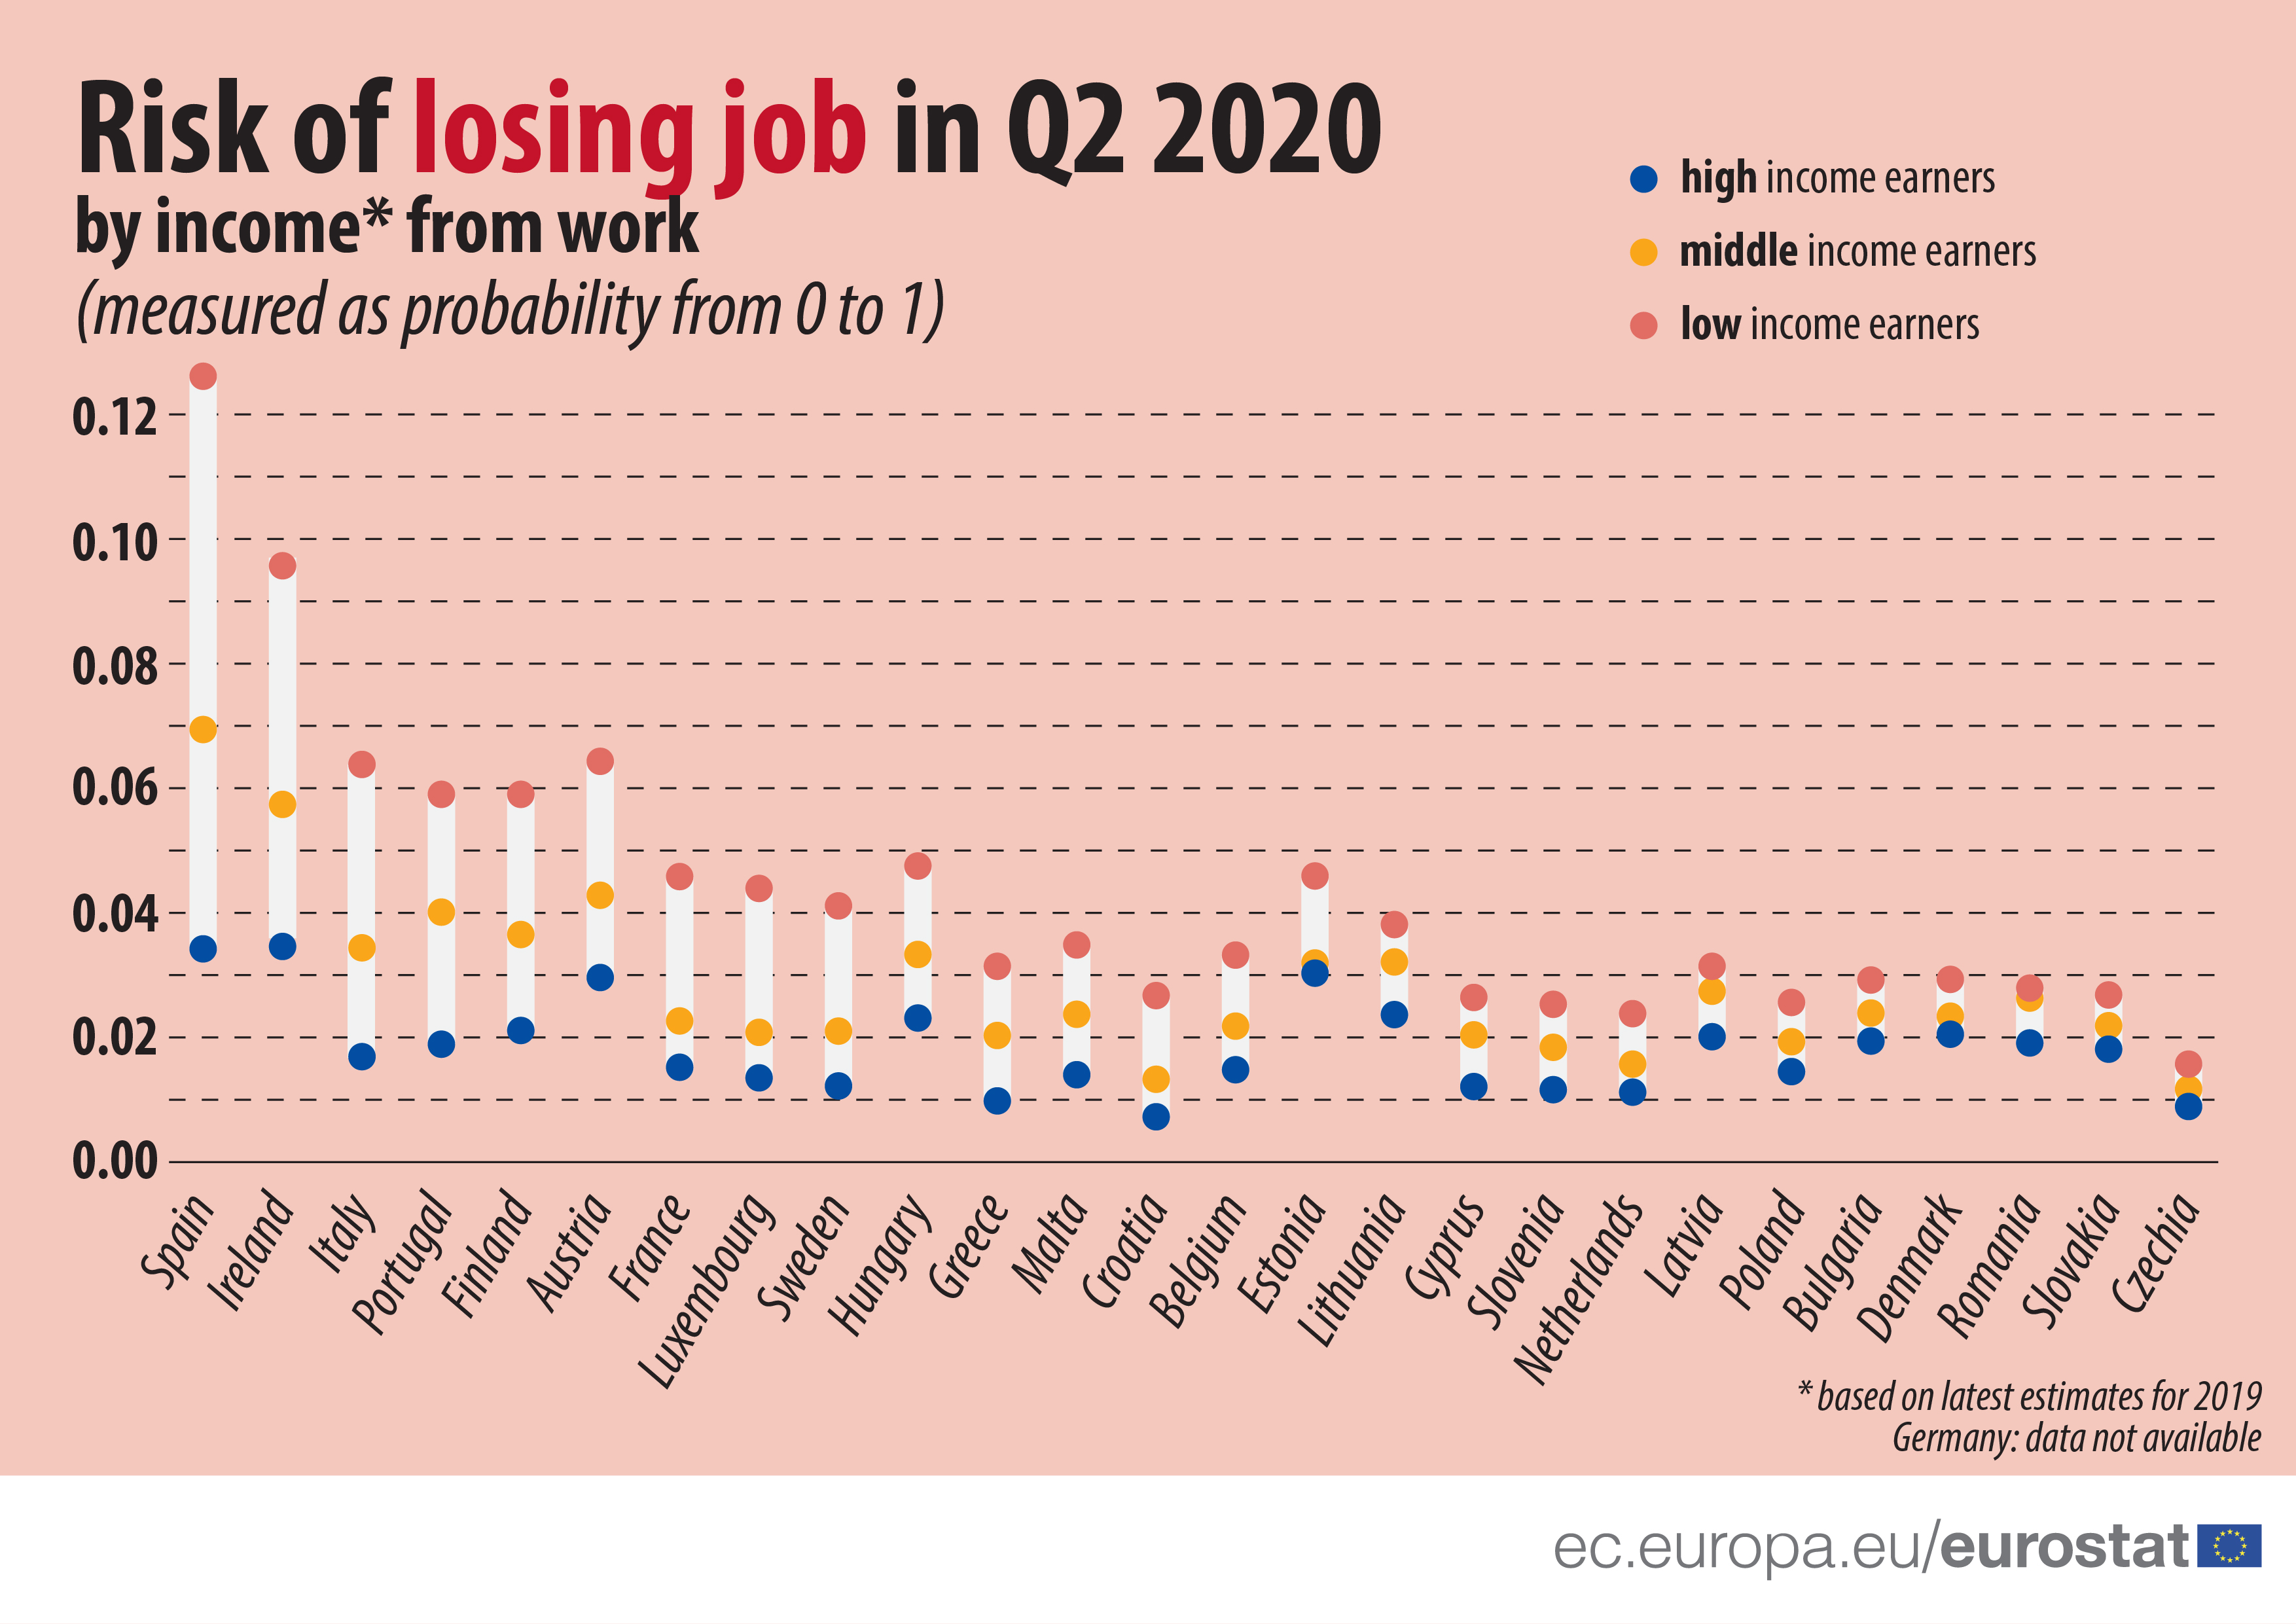 Risk of losing job by income from work, Q2 2020